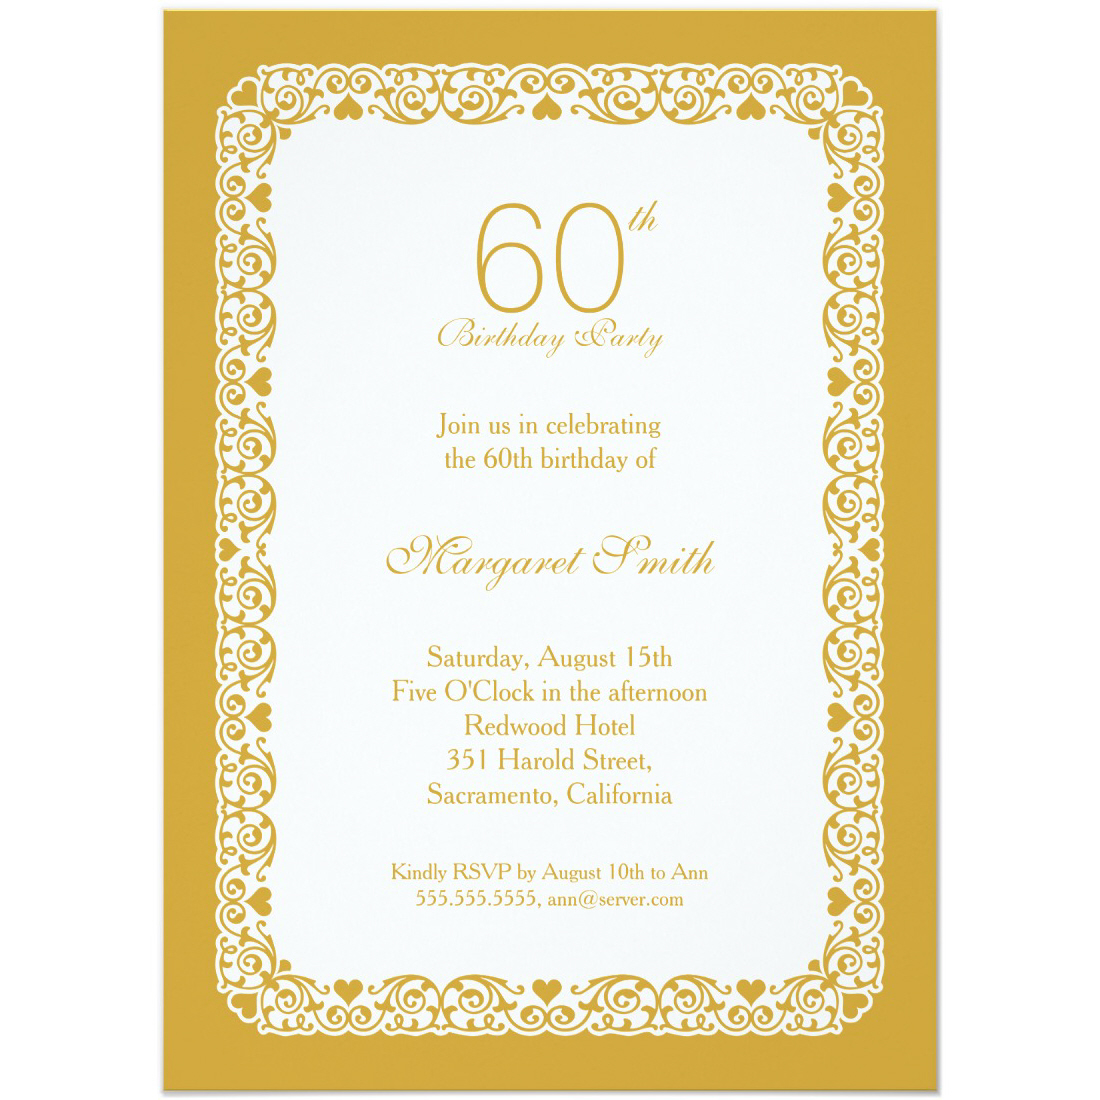 Custom birthday invitations archives superdazzle custom elegant personalized 60th birthday party invitations choose your own colors filmwisefo Choice Image